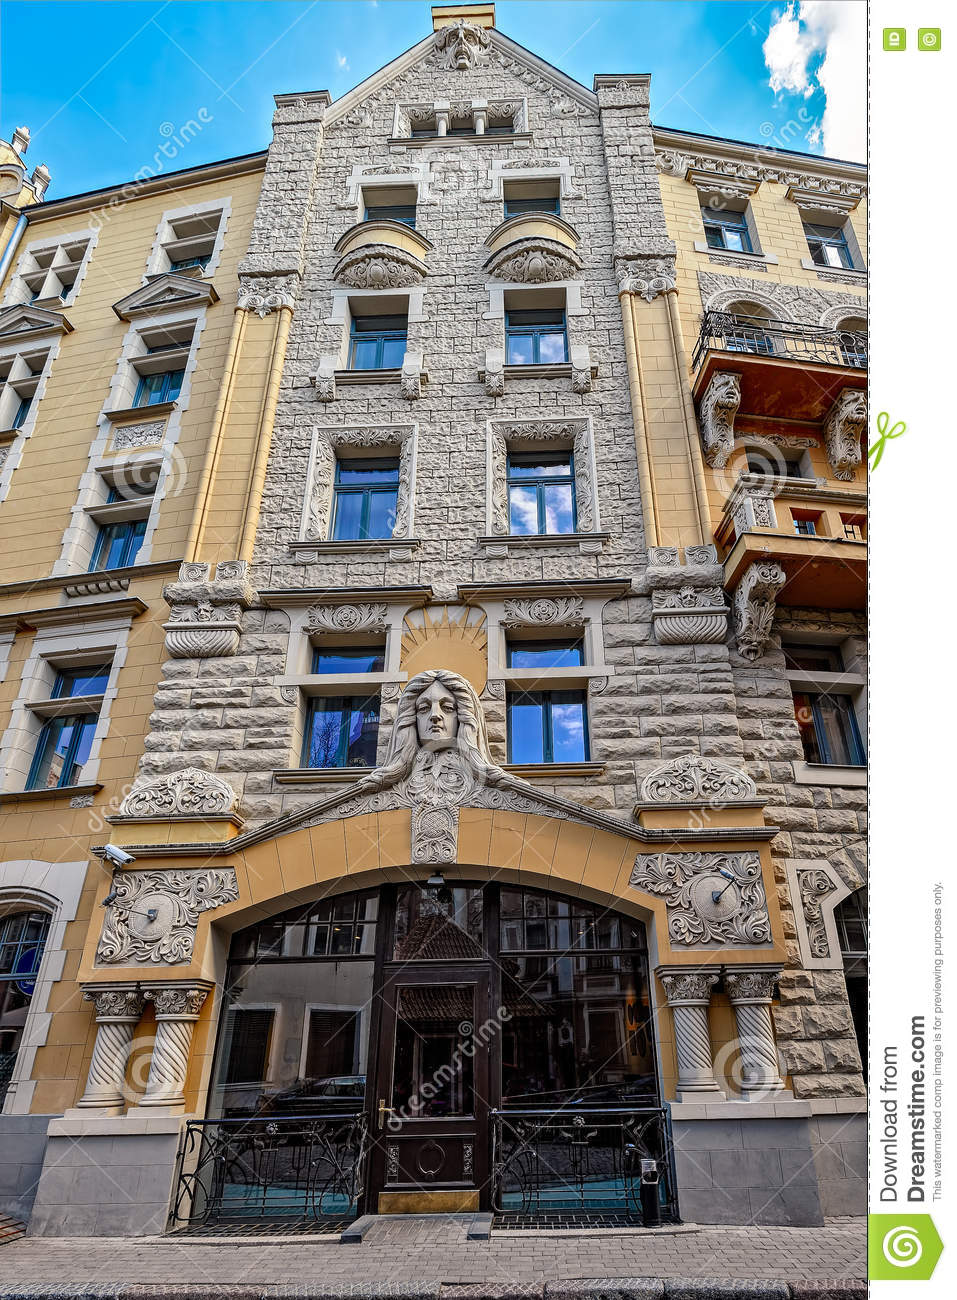 Jugendstil architektur stockfoto bild 71415919 for Architektur jugendstil